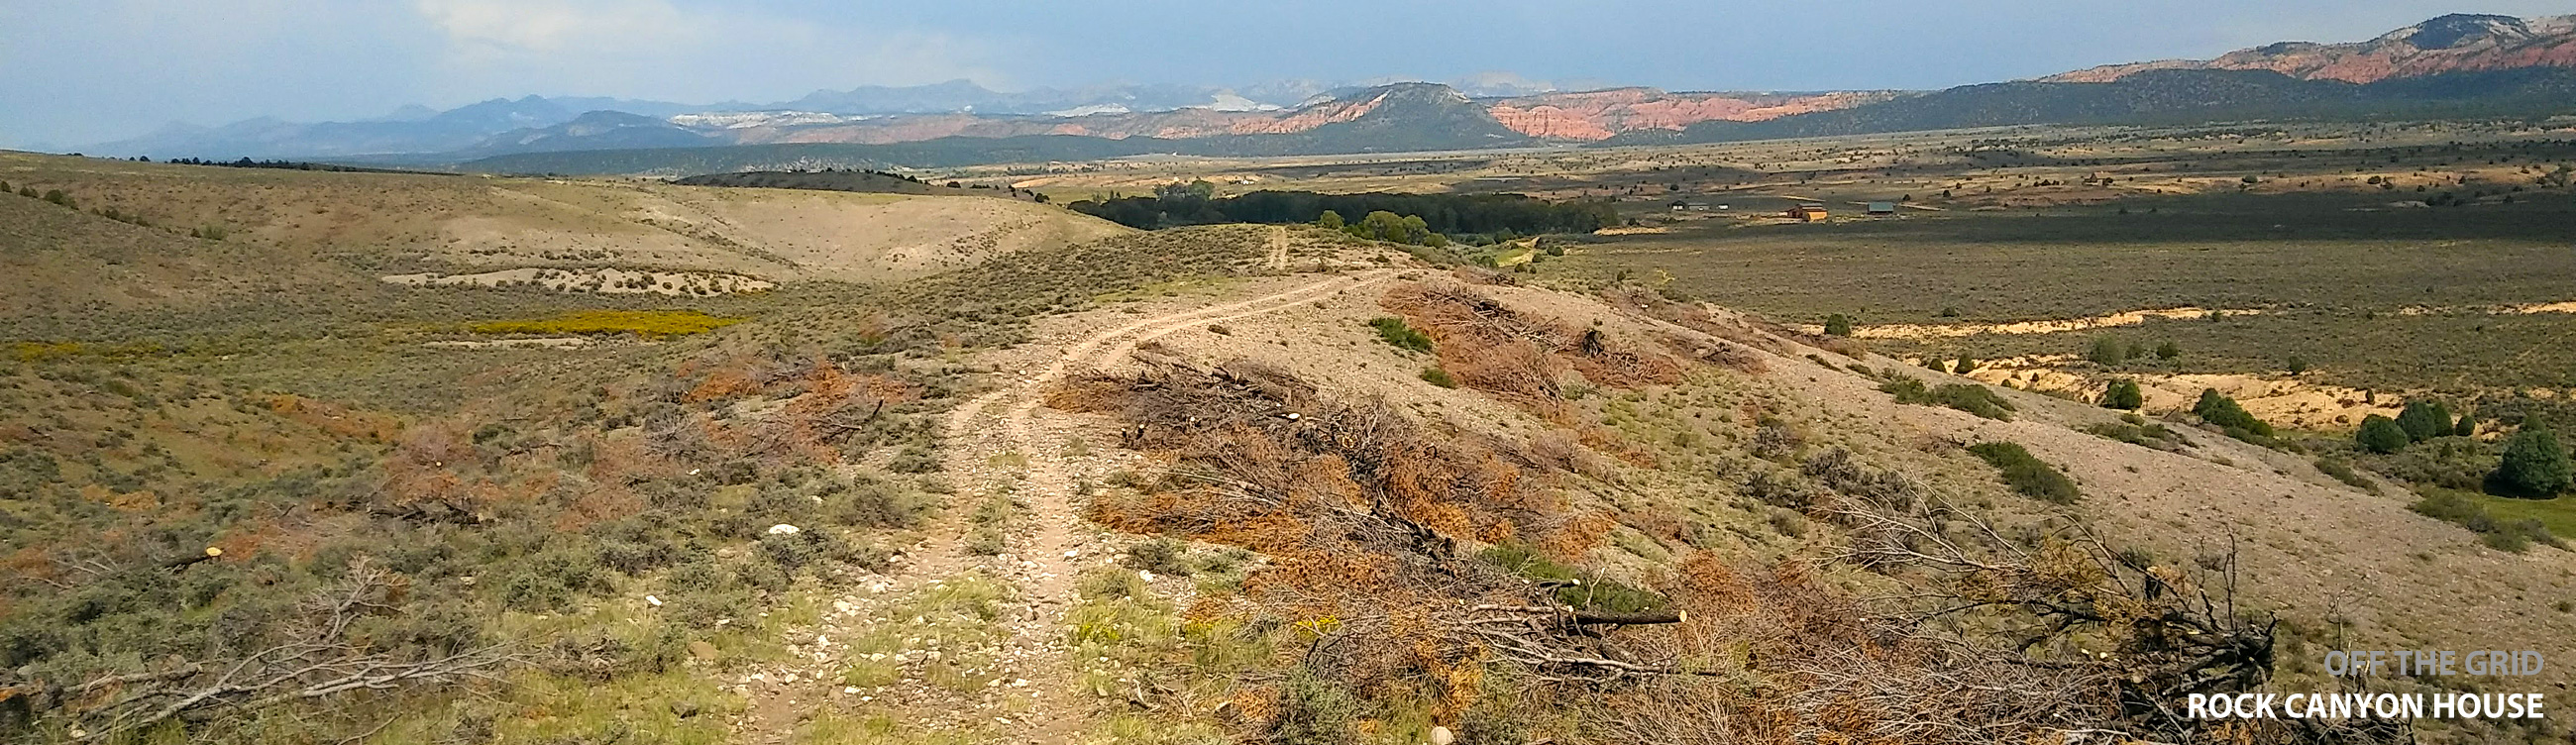 Ridgeline ATV Trail View